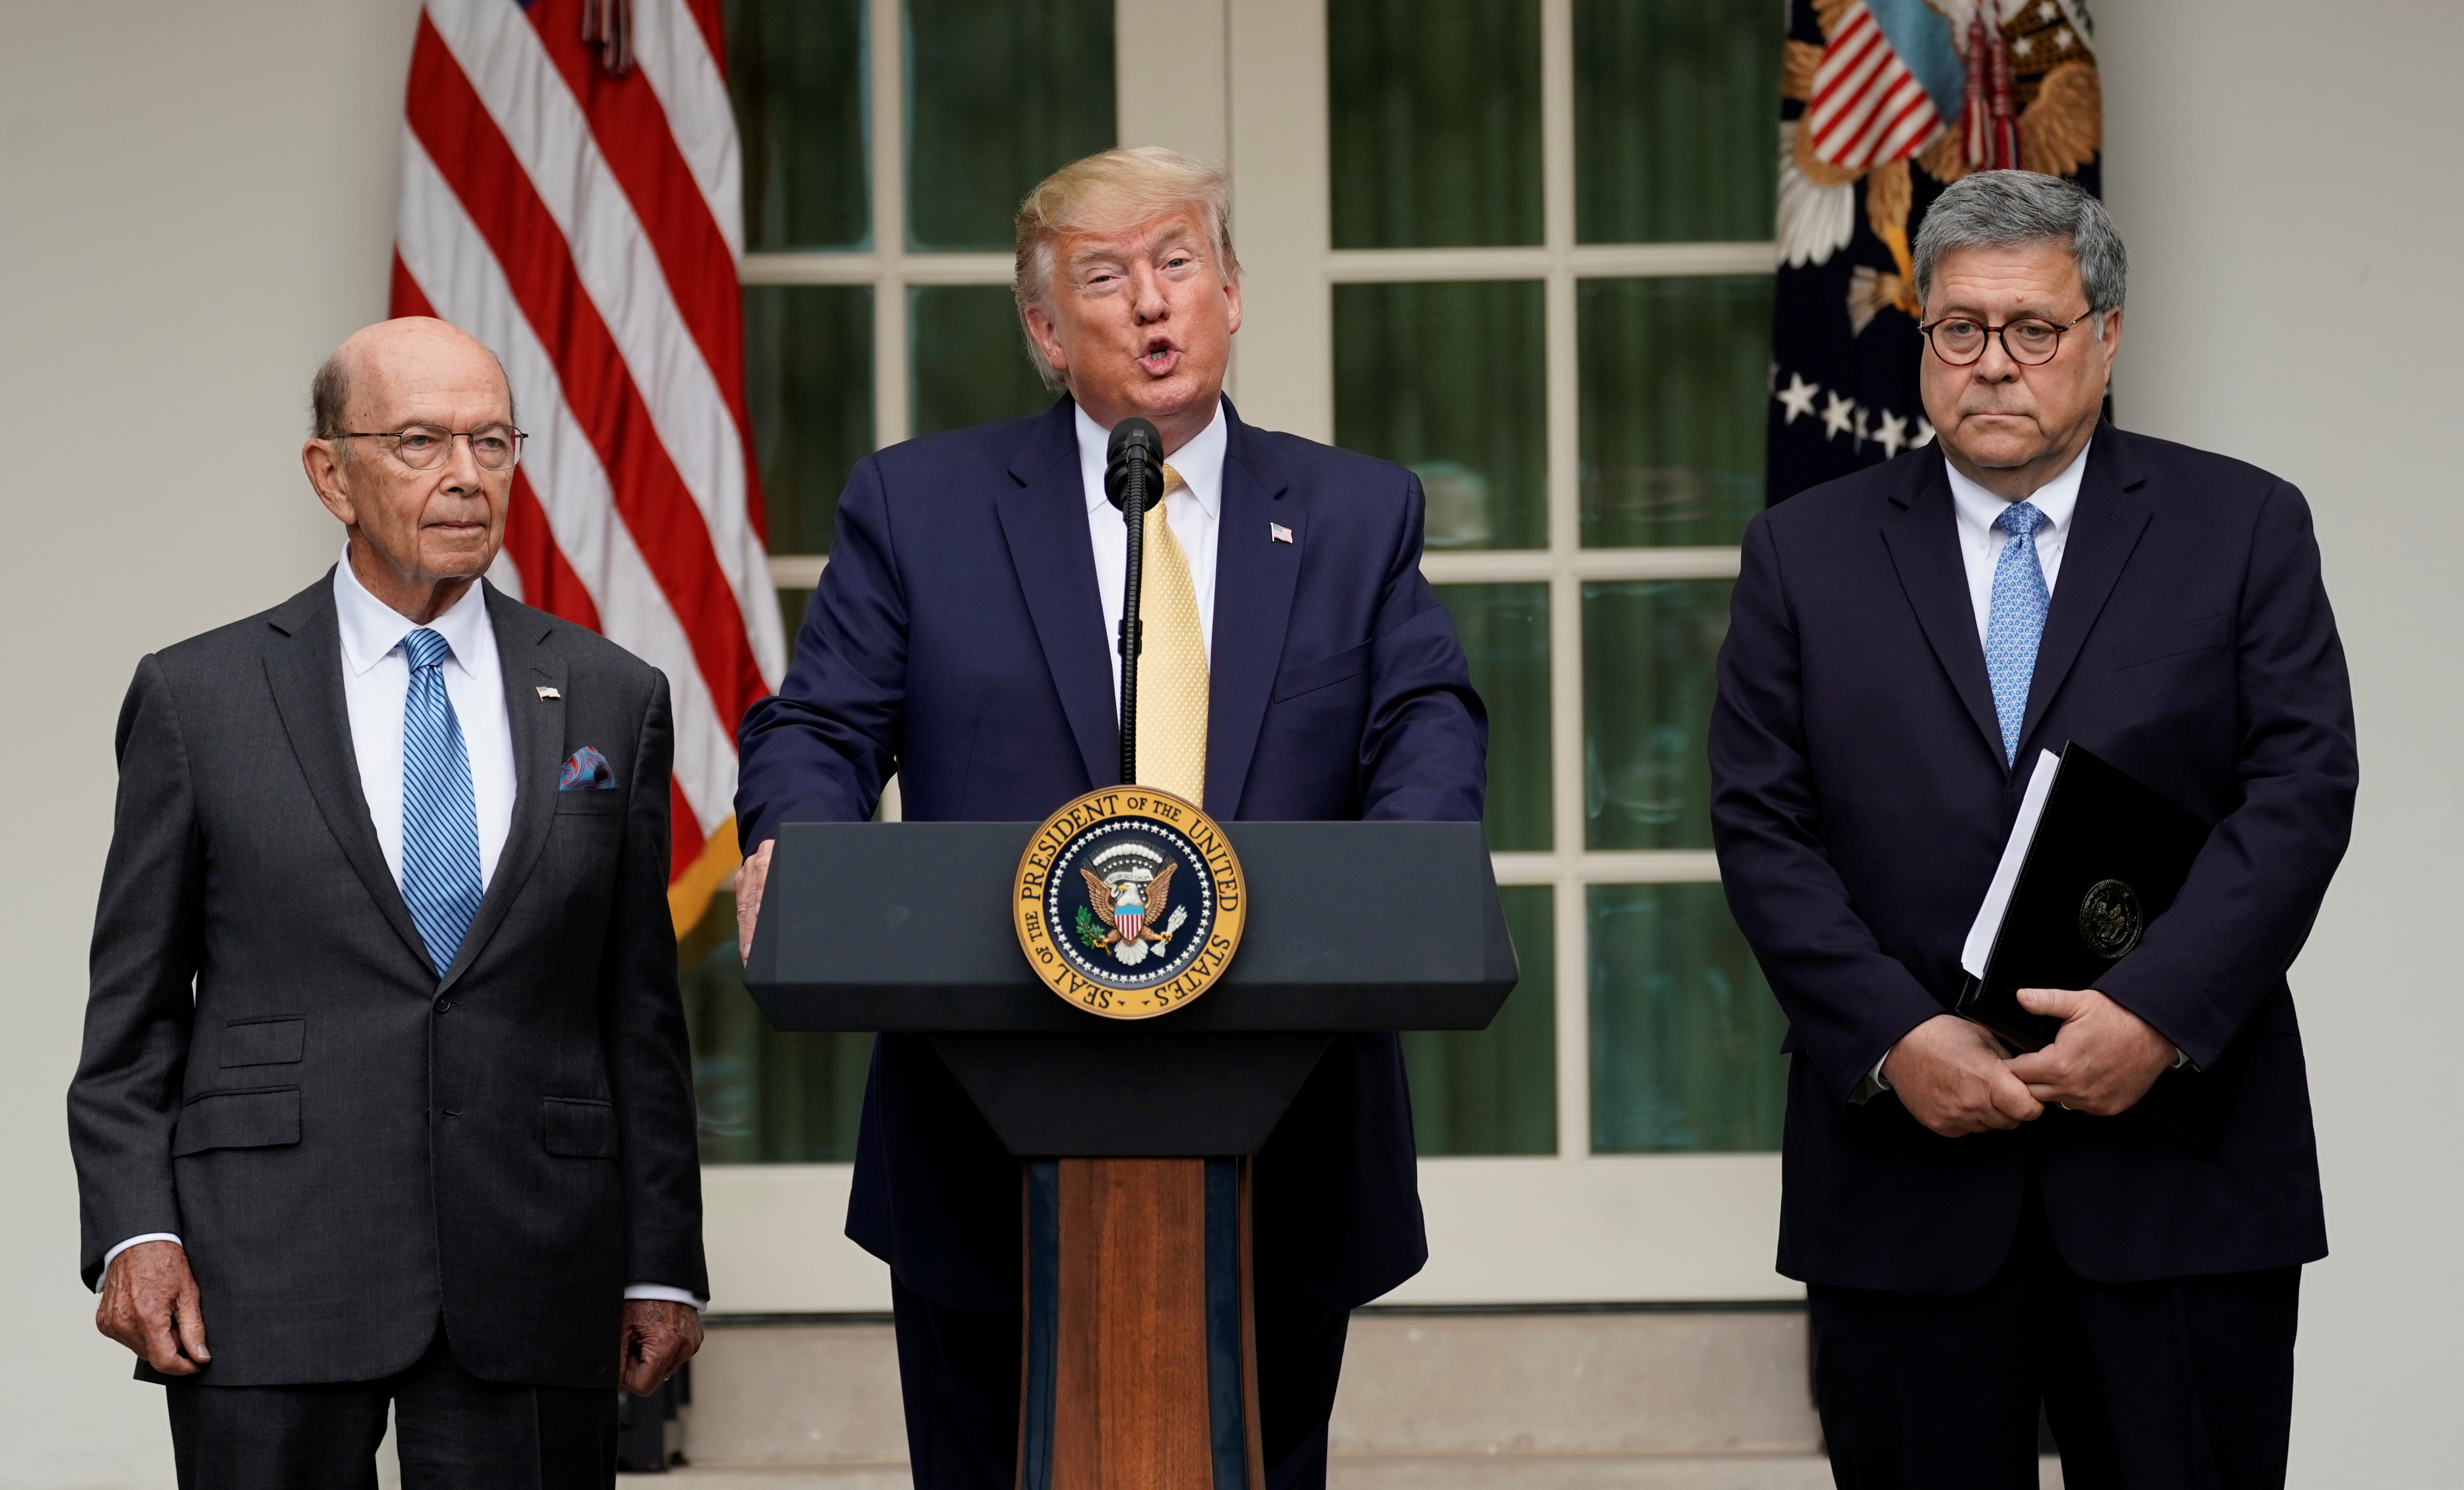 U.S. President Donald Trump stands between Commerce Secretary Wilbur Ross and Attorney General Bill Barr to announce his administration's effort to gain citizenship data during the 2020 census at an event in the Rose Garden of the White House in Washington, U.S., July 11, 2019. REUTERS/Kevin Lamarque